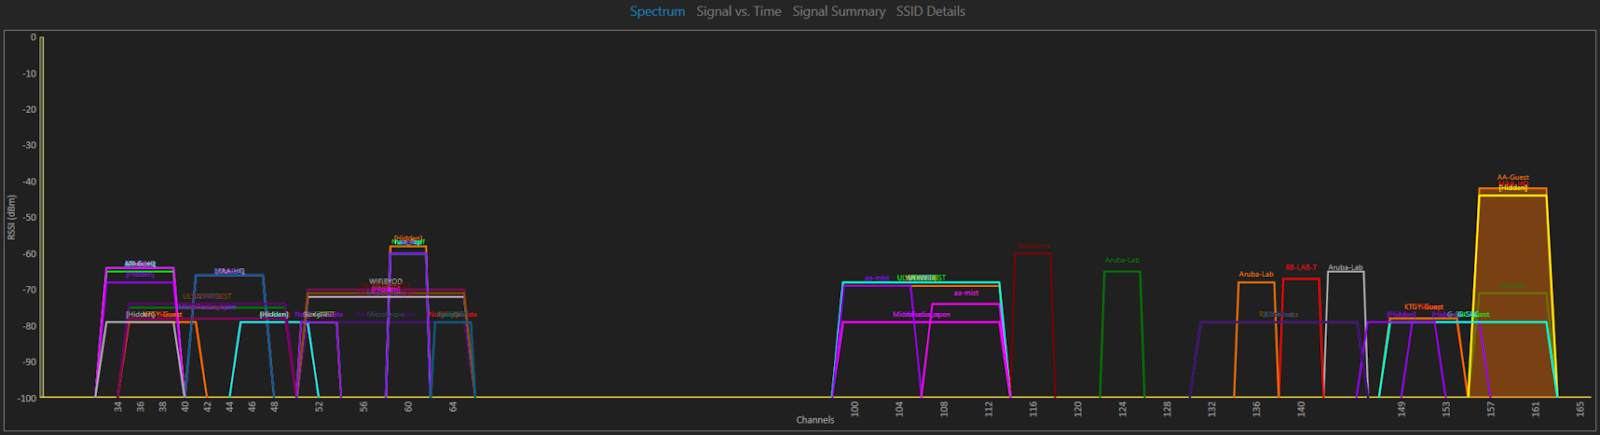 5 GHz Spectrum Graph Congested